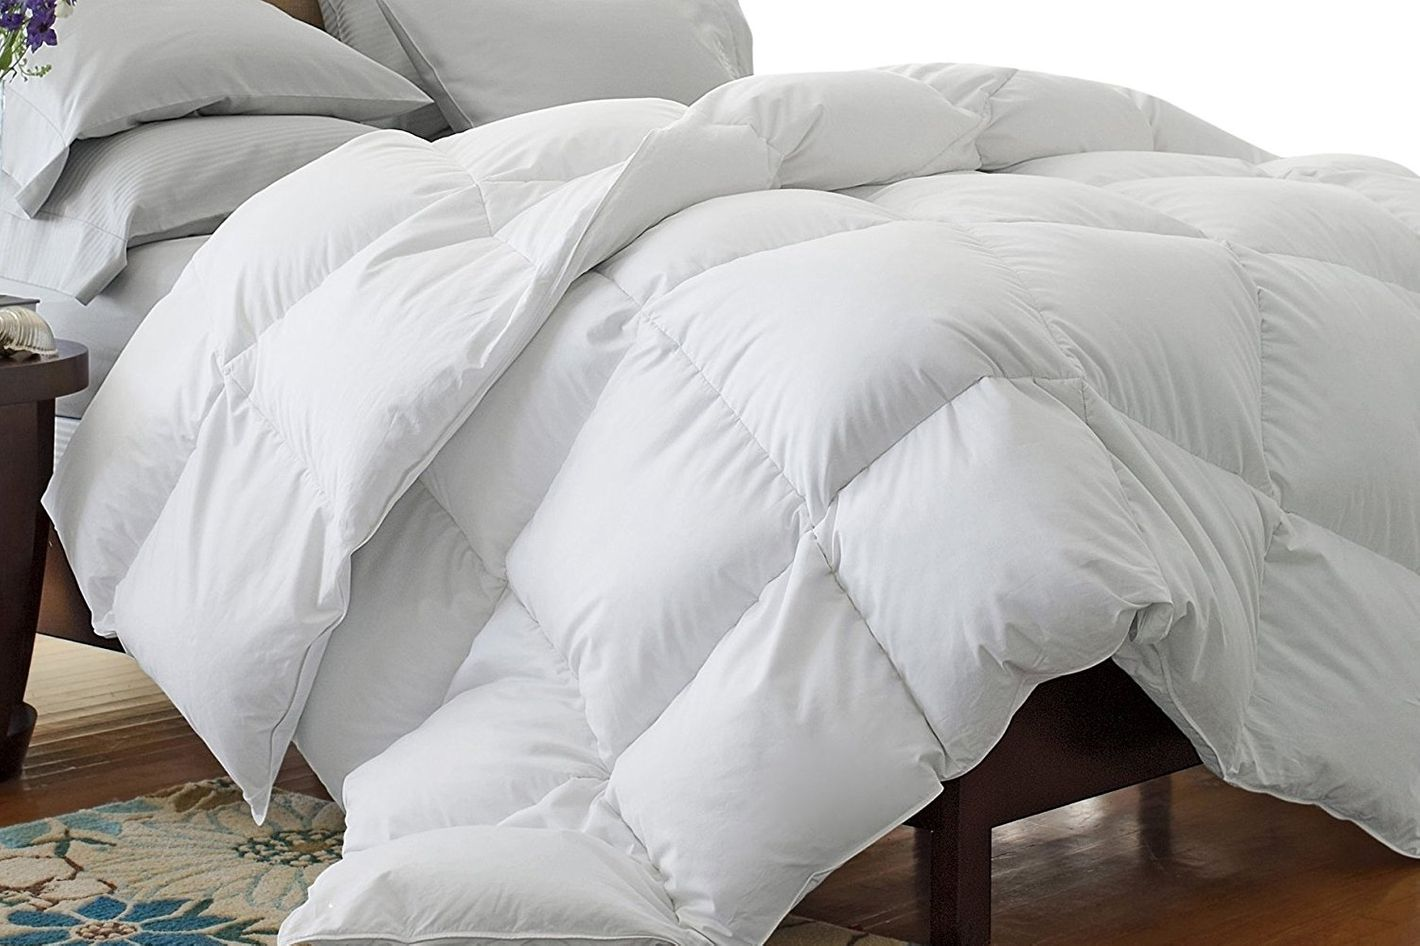 will comforters comforter guest home make feel guests your color that pin solid colour bedroom at palettes